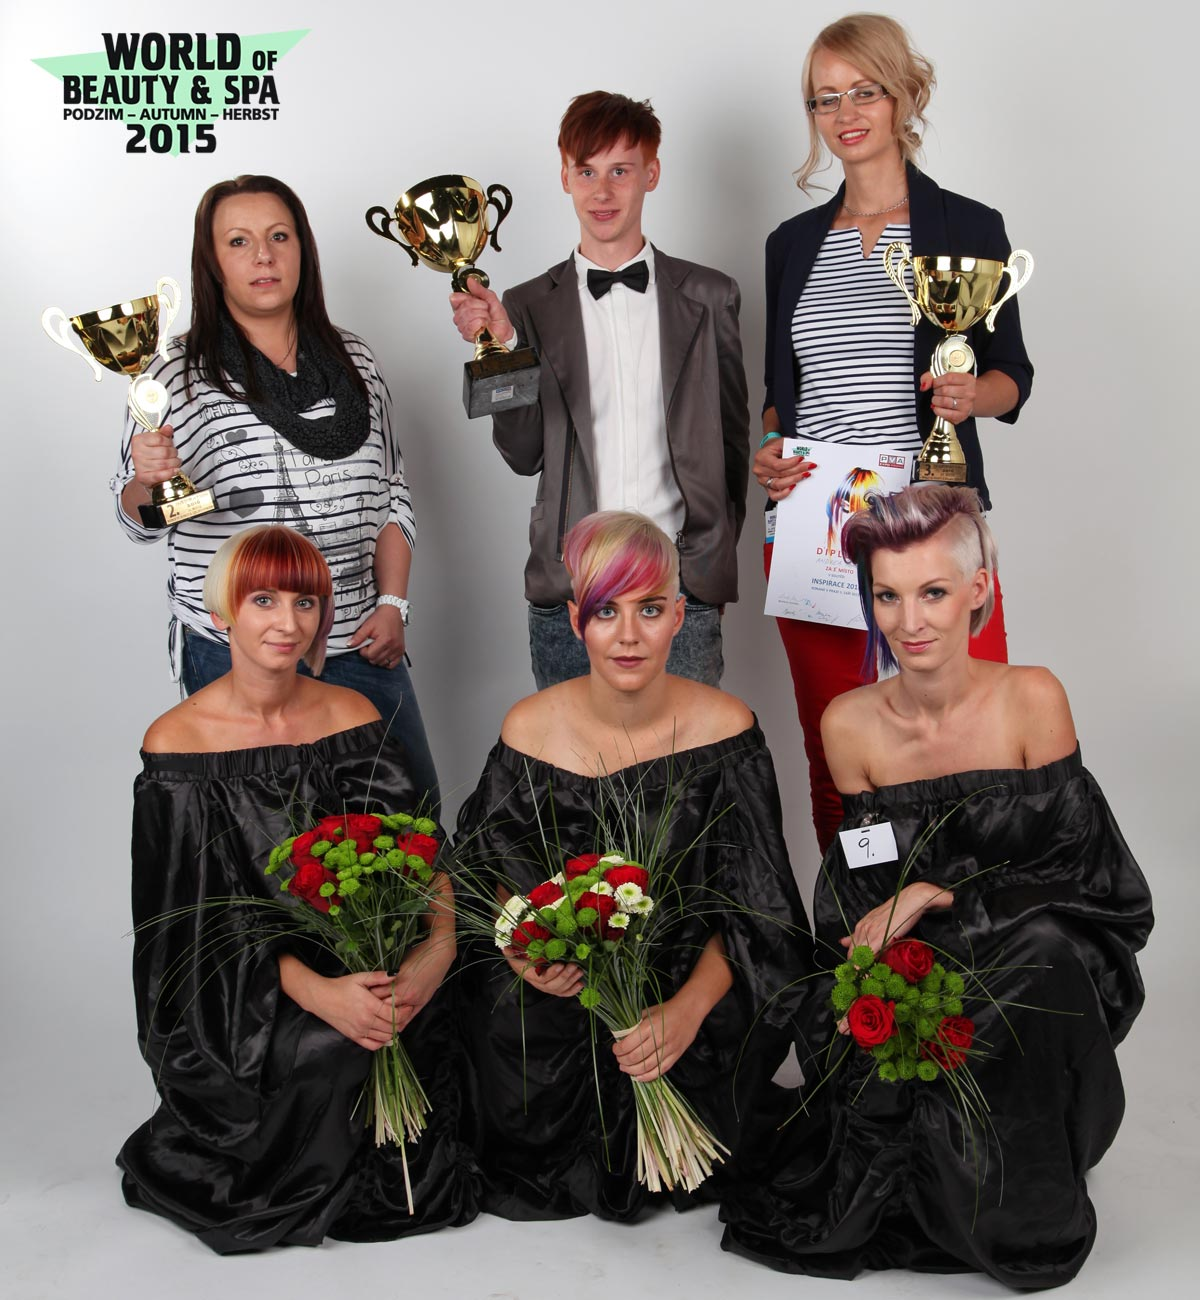 Valued hairdressers and their hairstyles in the competition Inspiration: 1st place Patrik Hagara, Sanett, Prague; 2nd place Marie Malatova, Salon Inspiration, Tachov; 3rd place Andrea Mala, Salon de coiffure, Nova Paka.